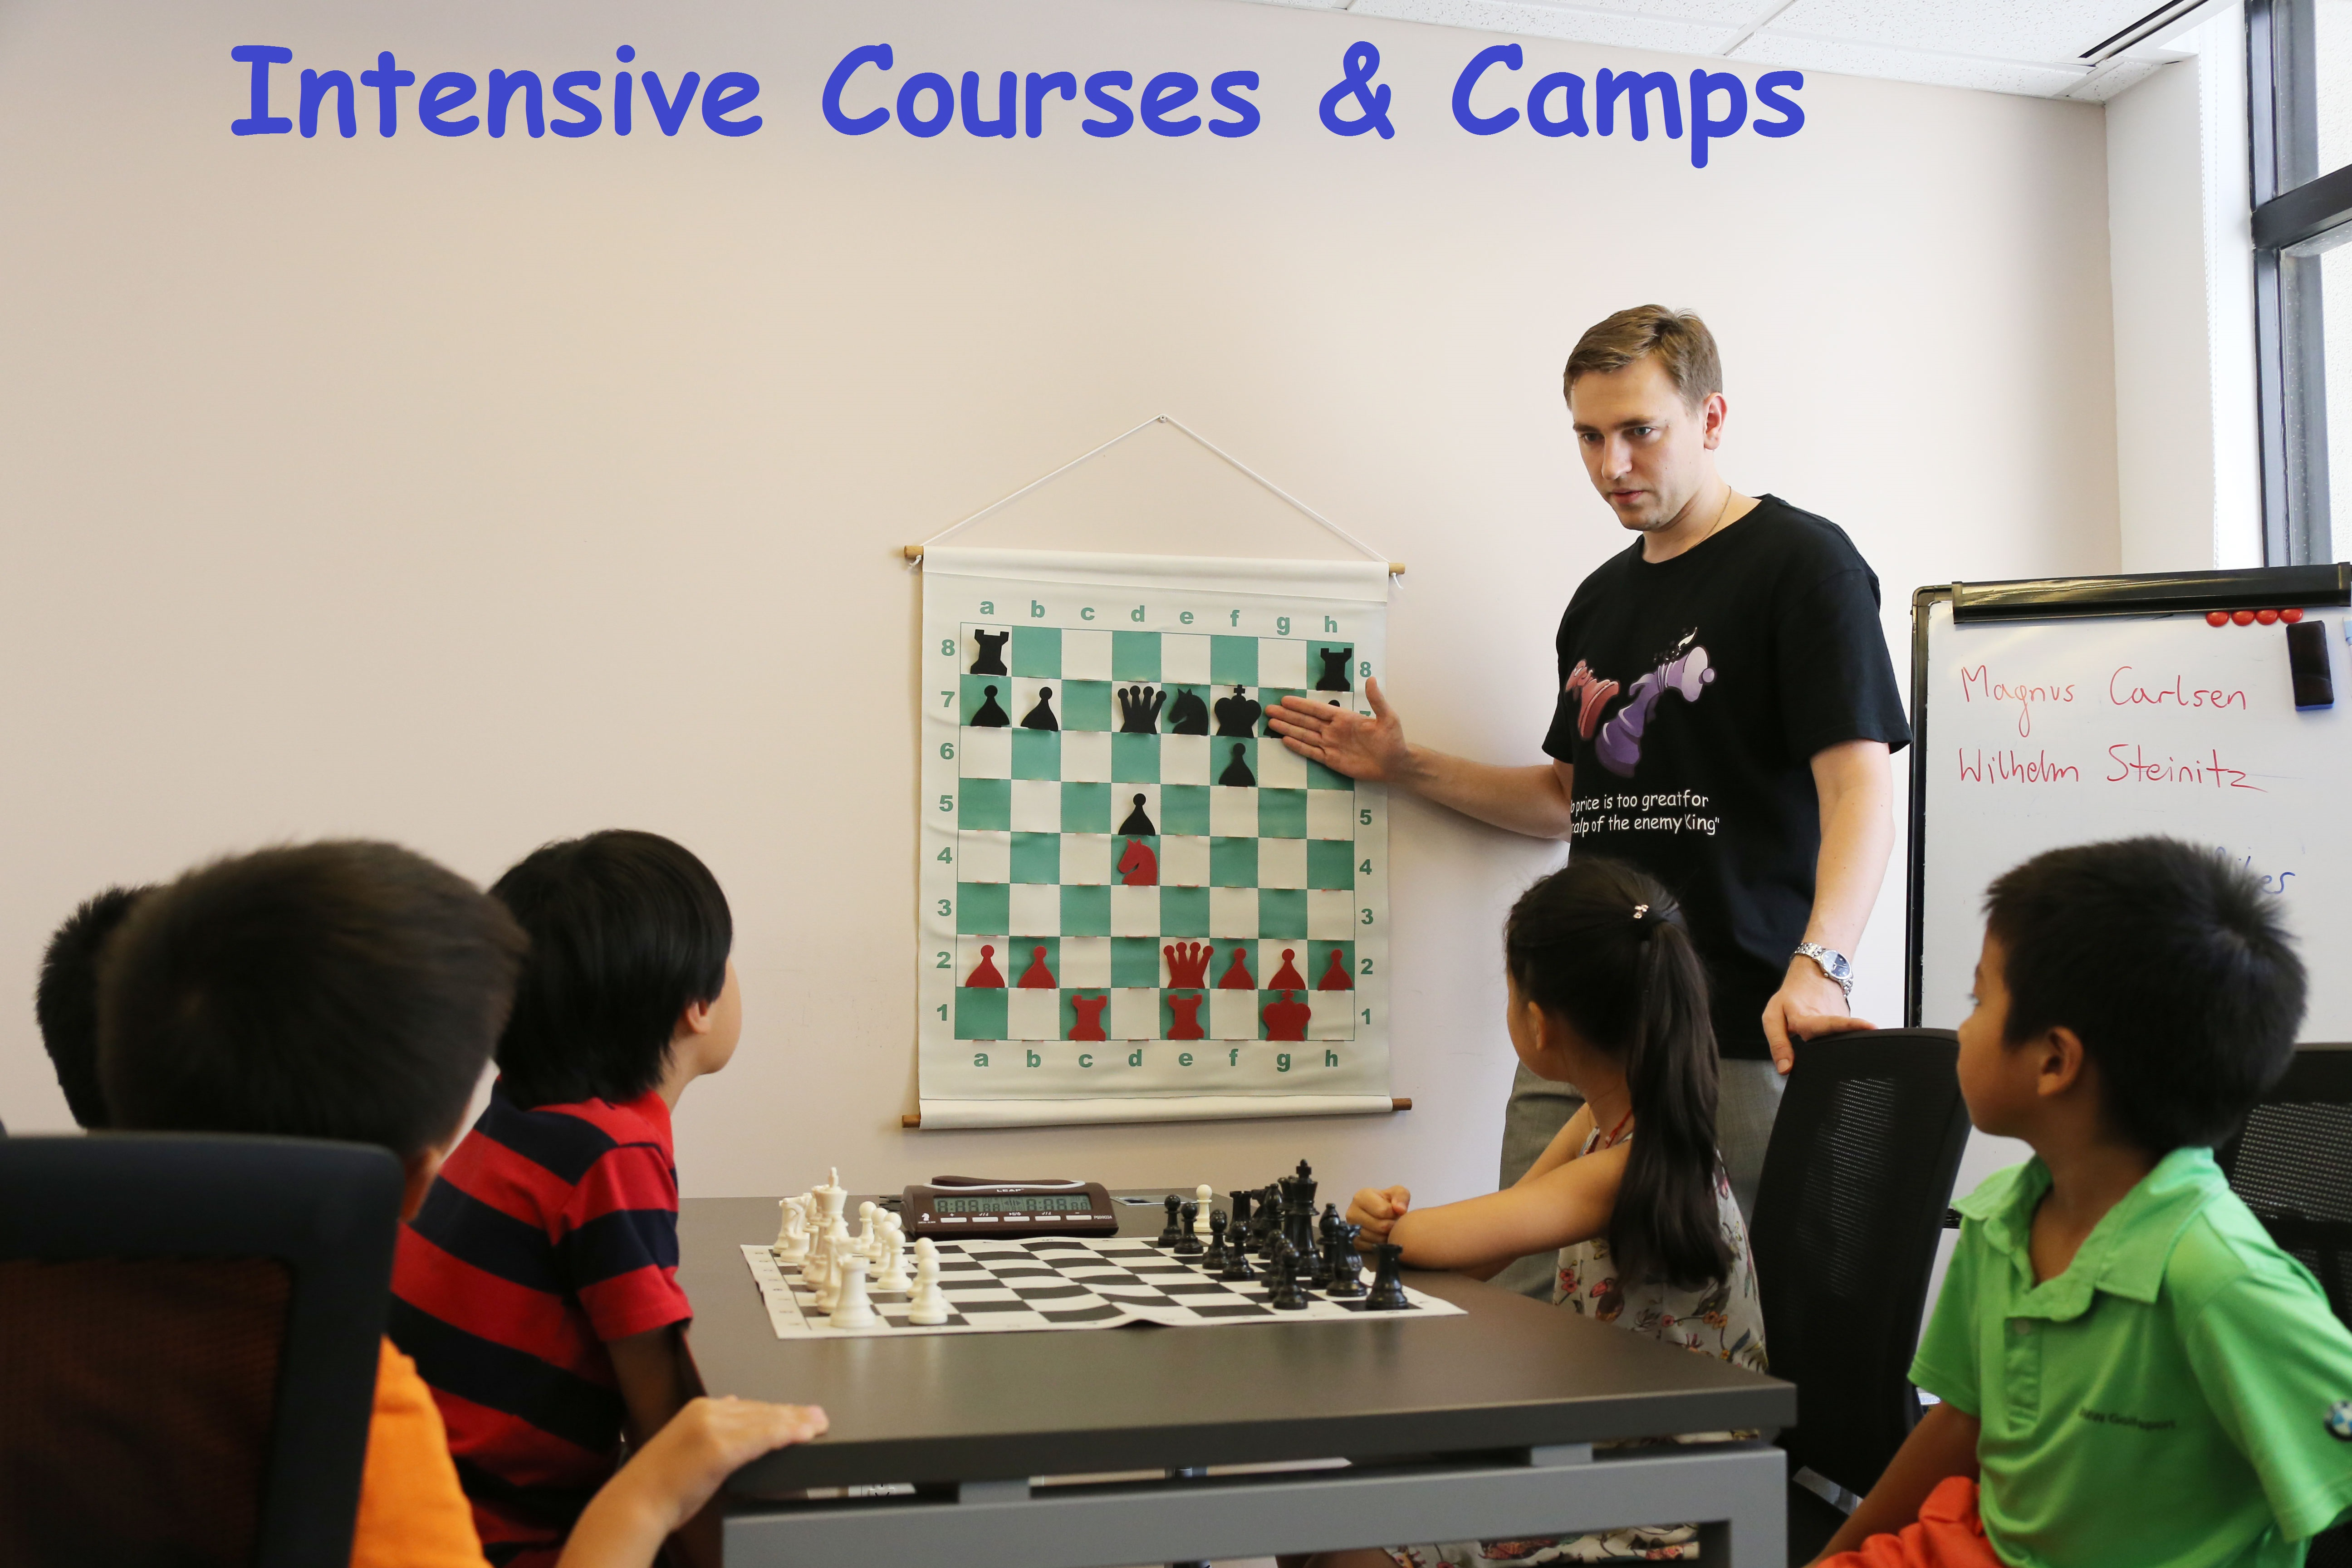 Intensive Courses and Camps